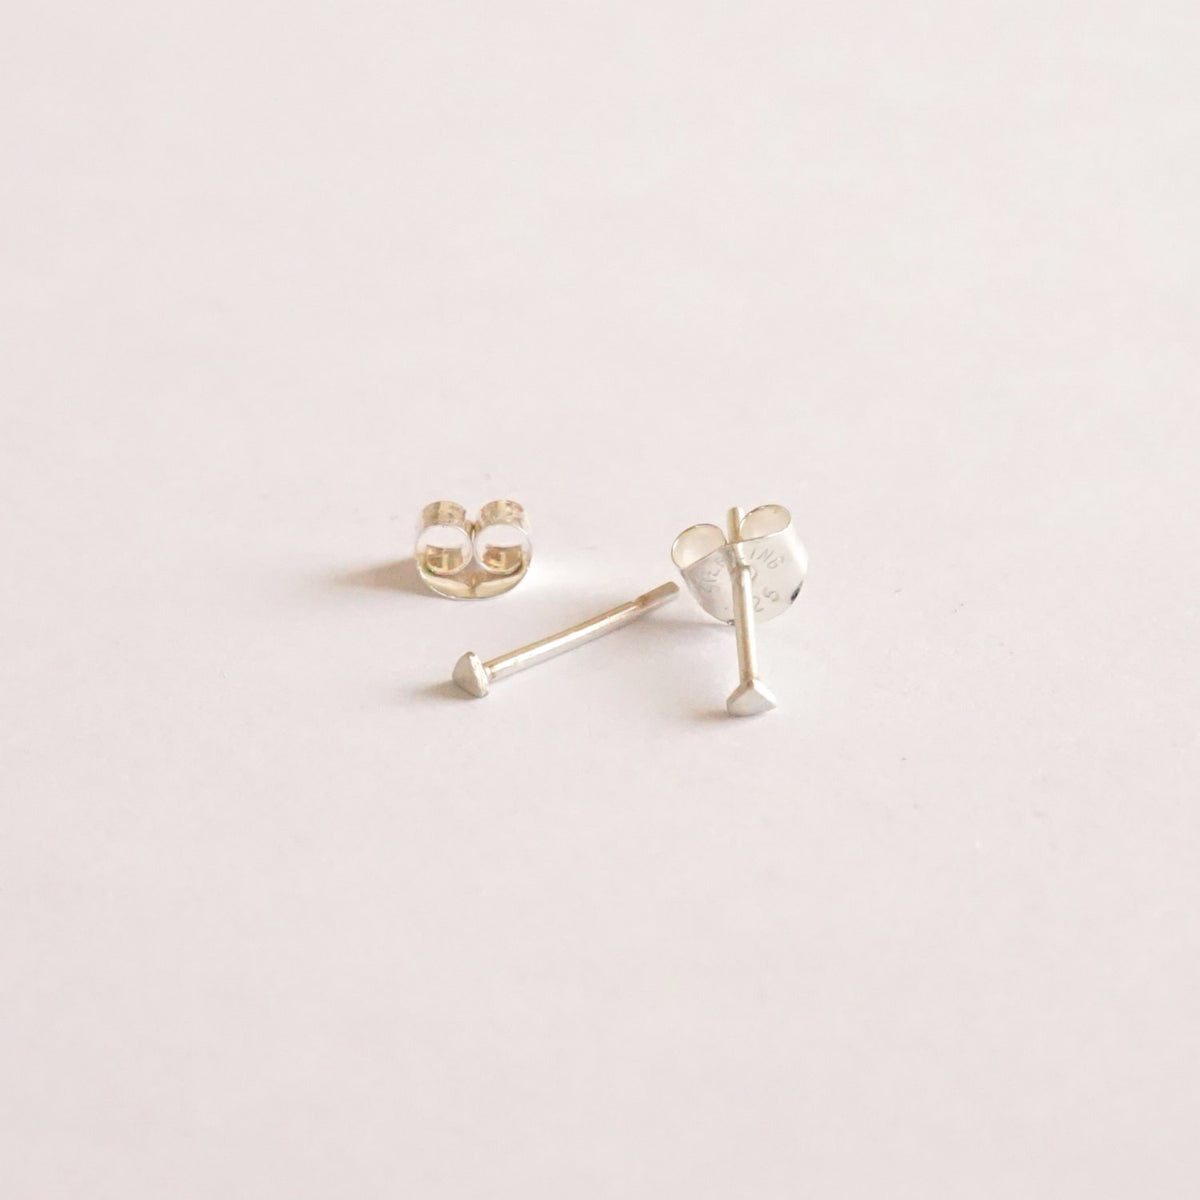 Timeless Hand-Made Sterling Silver or 14K Gold Triangle Stud Earrings - 0200 - Virginia Wynne Designs